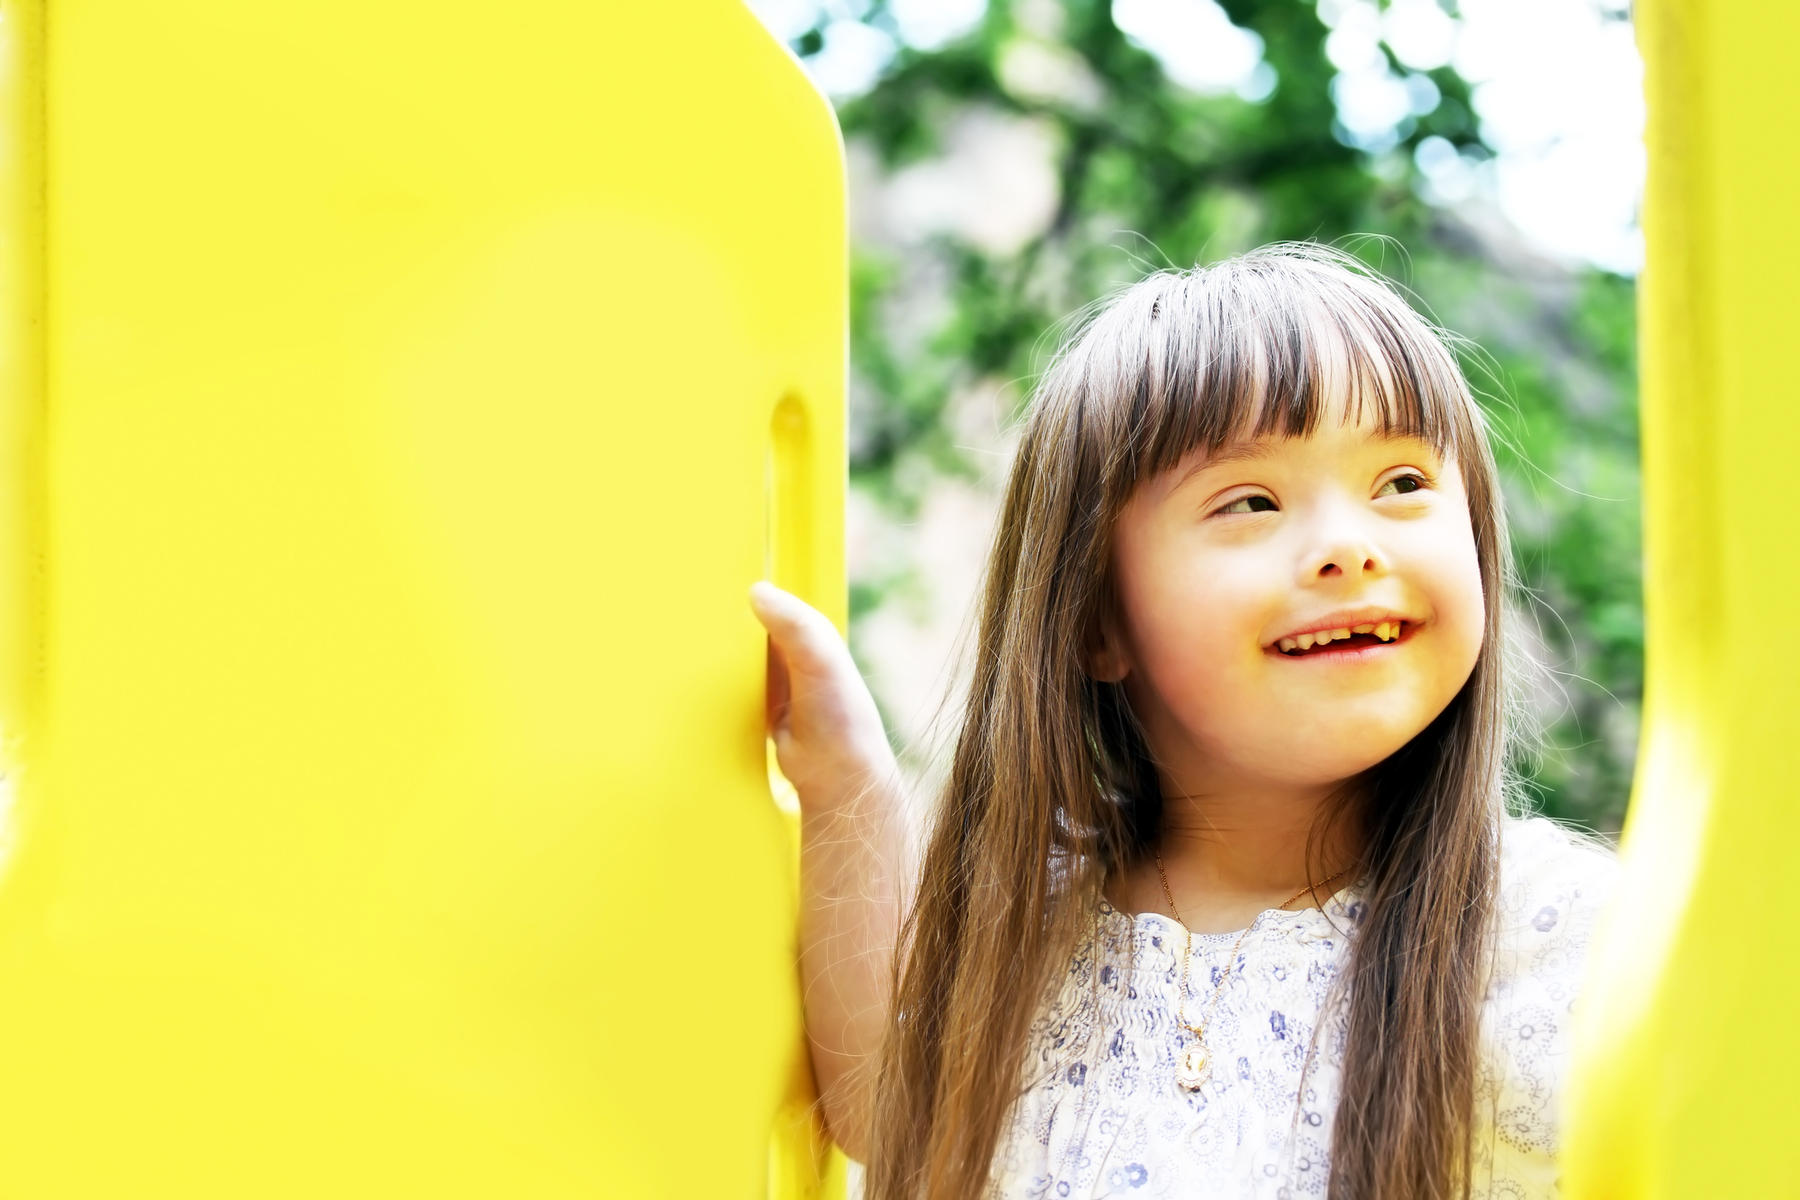 Kids with Down Syndrome Are Growing Up Healthier